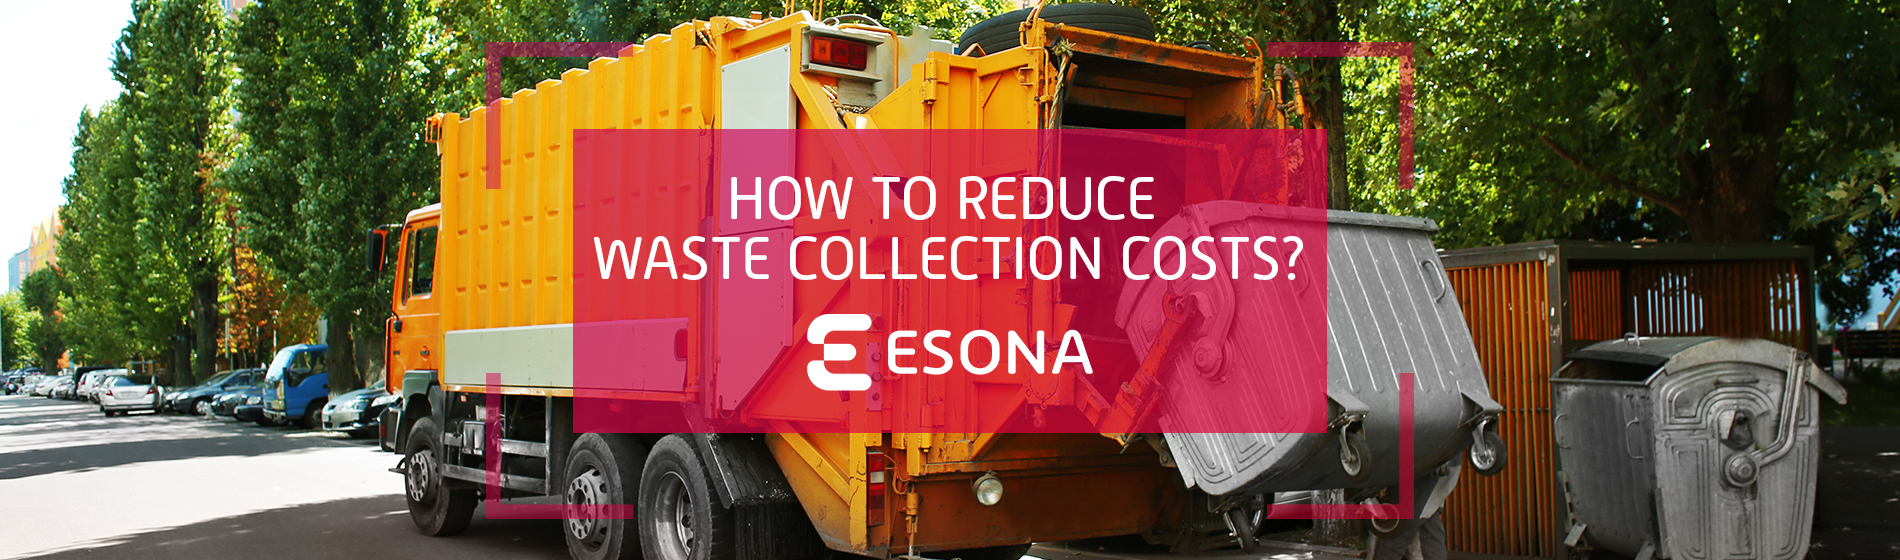 How to reduce waste collection costs?